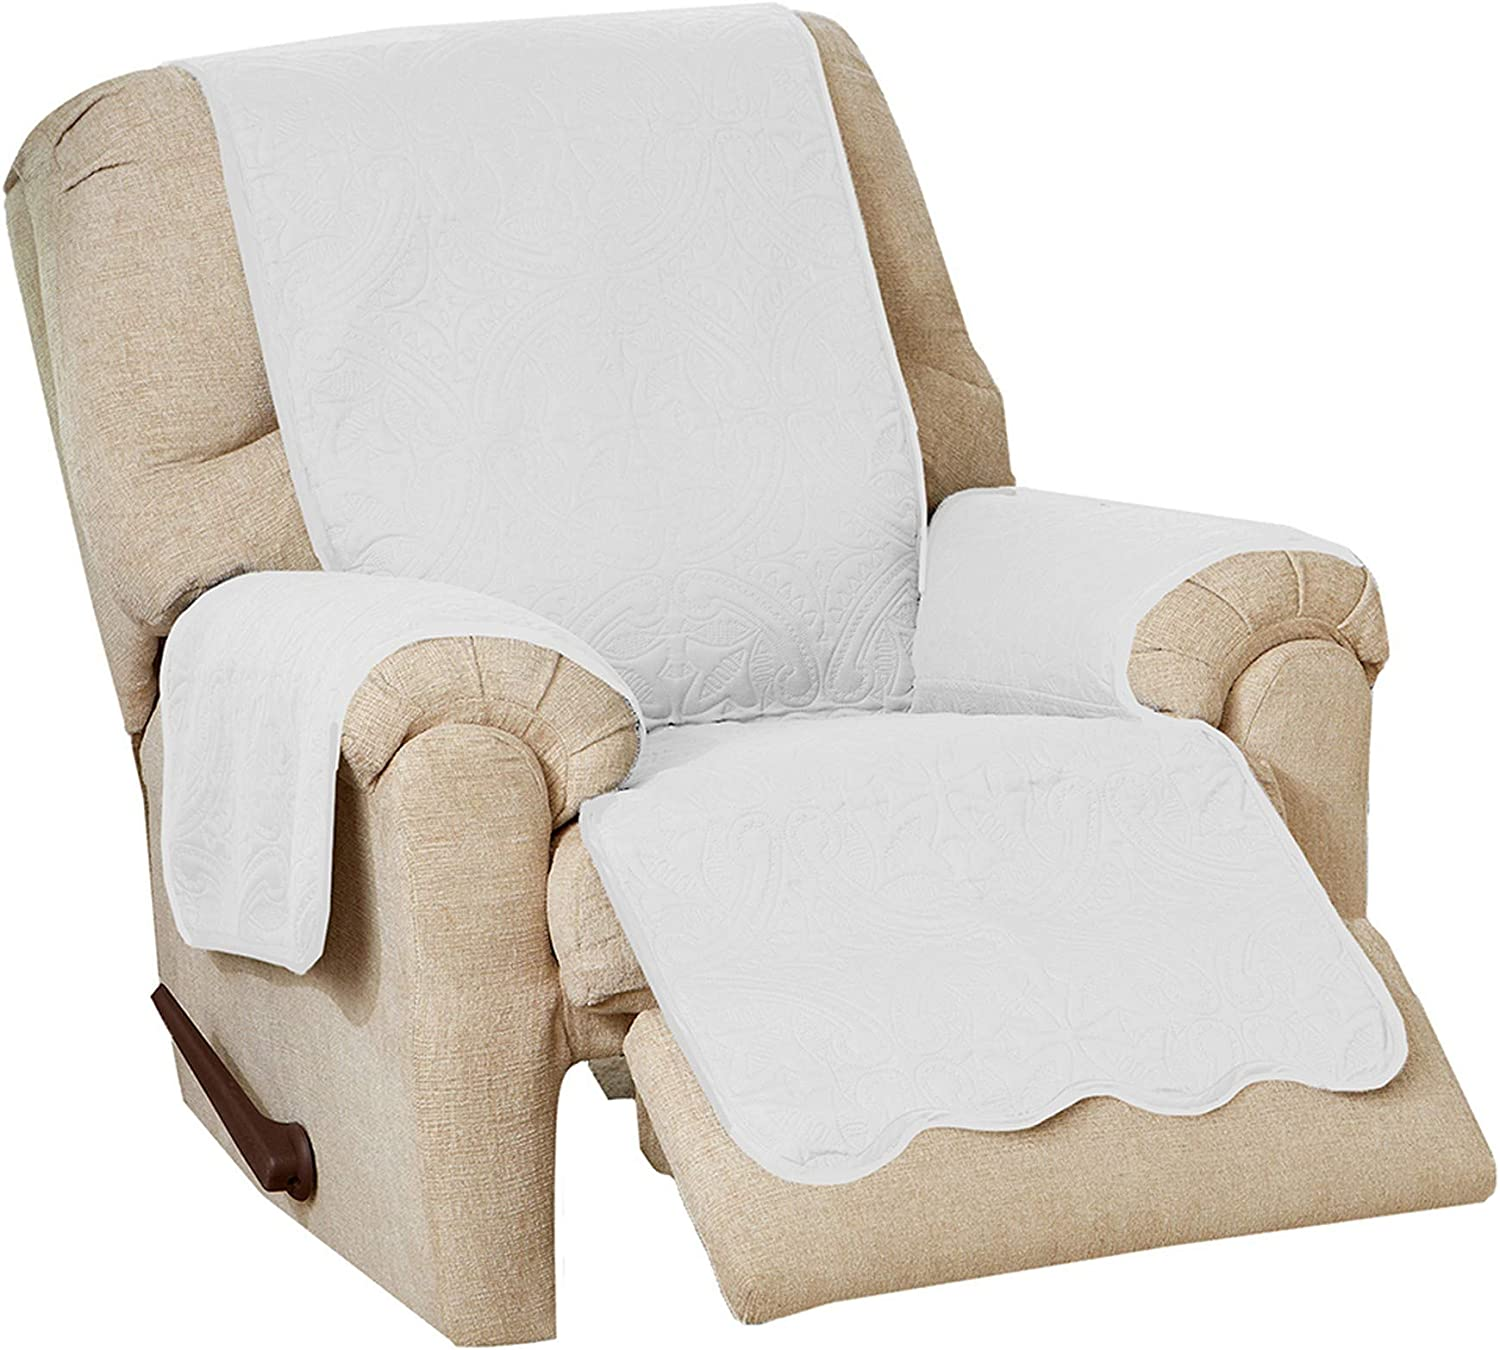 famous Medallion Stitched Solid Furniture Resistant Stain Du Charlotte Mall Protector.